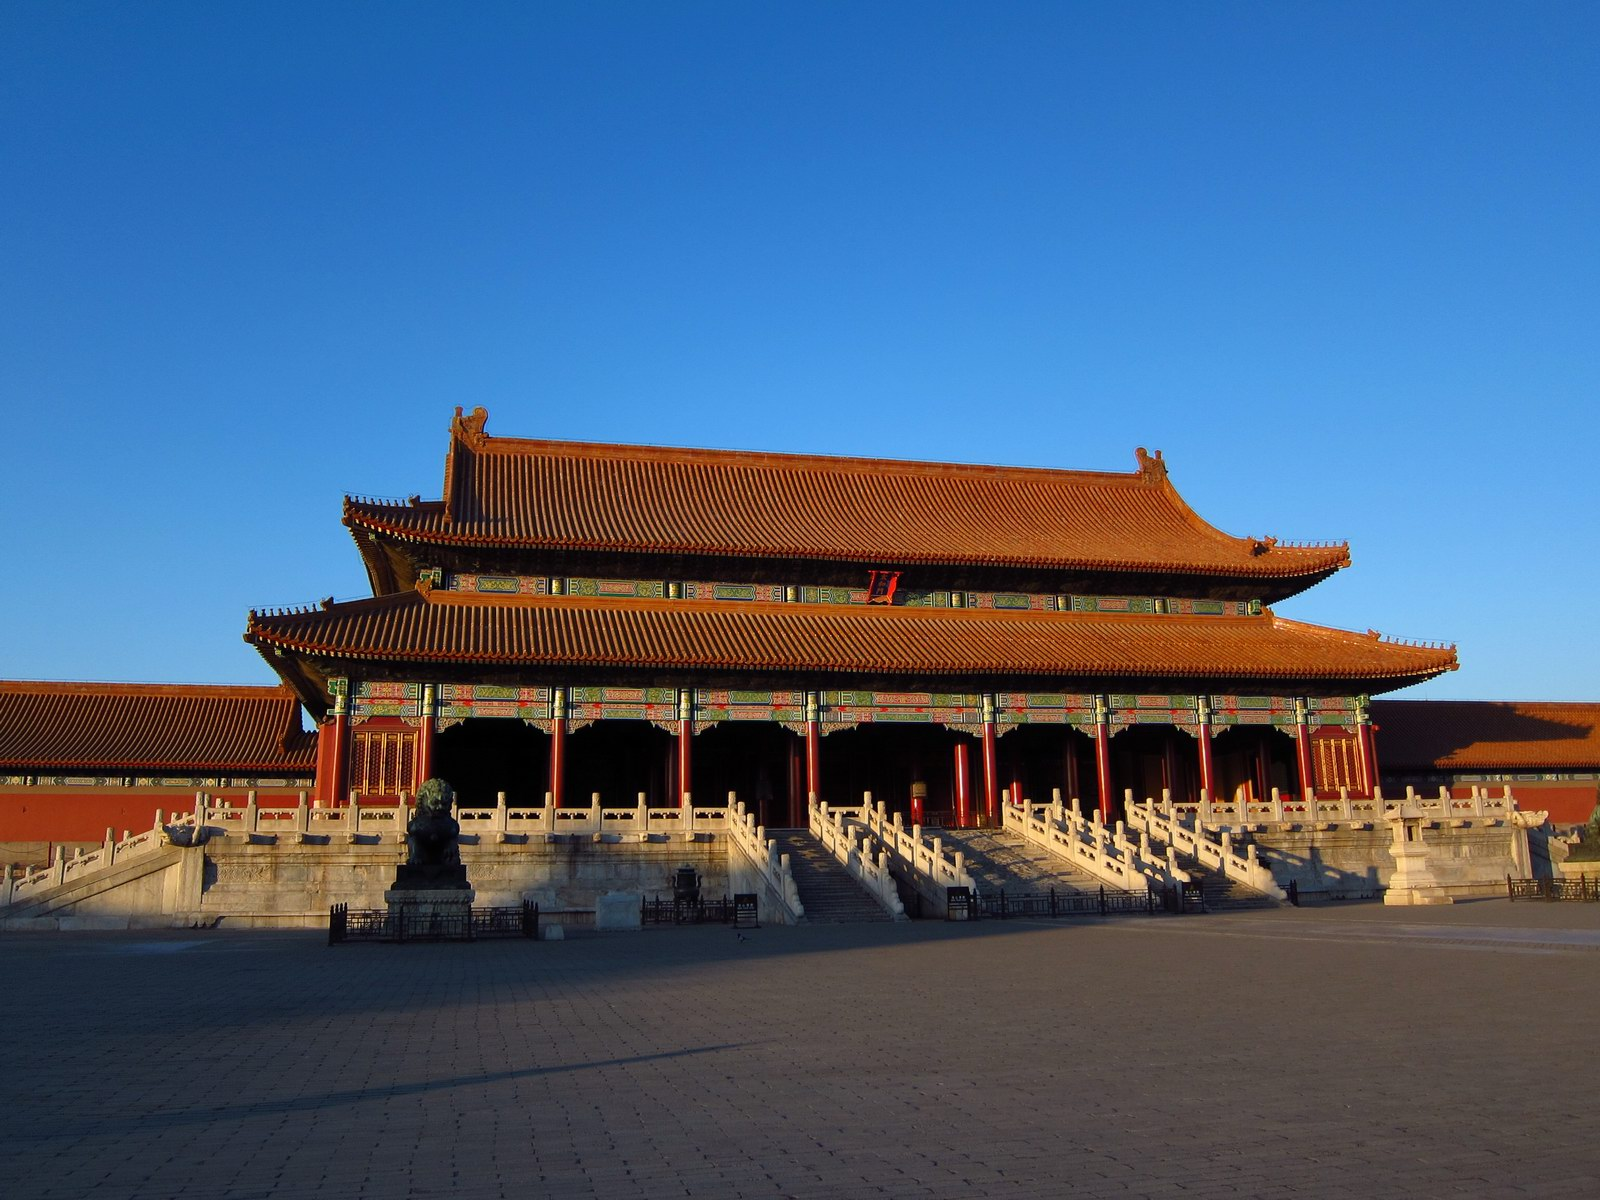 taihe_gate__the_forbidden_city__beijing___china.jpg